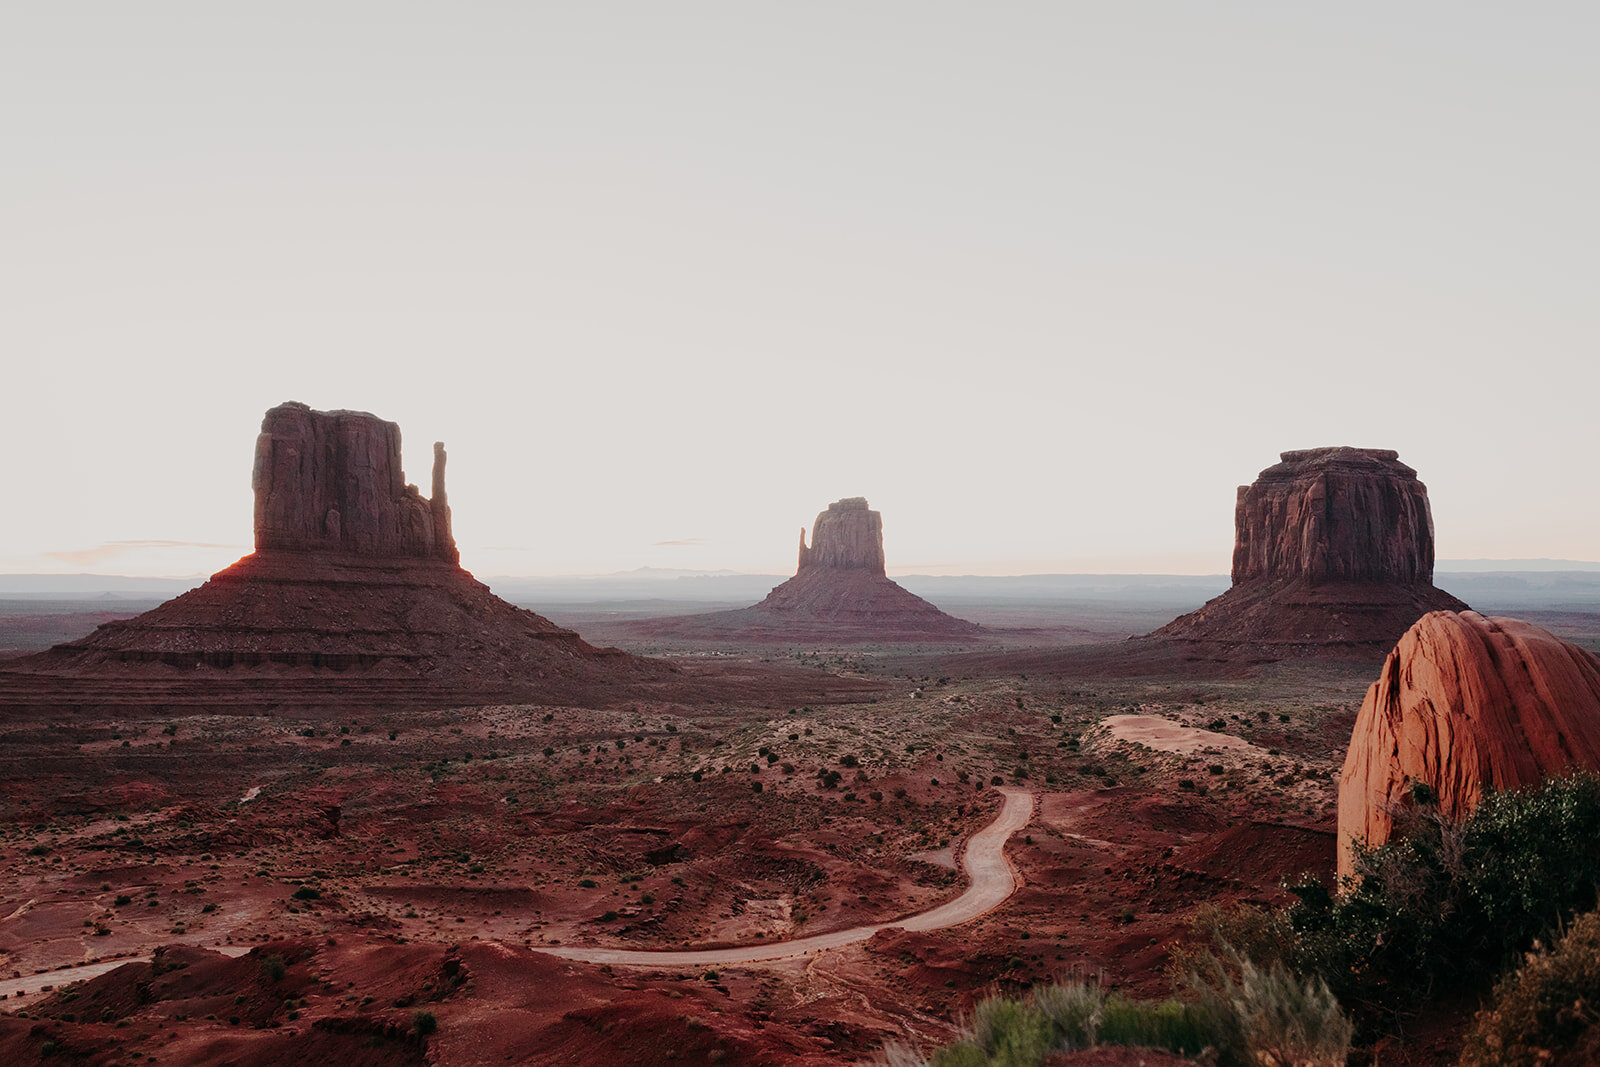 Landscape photo of red rock buttes at Monument Valley